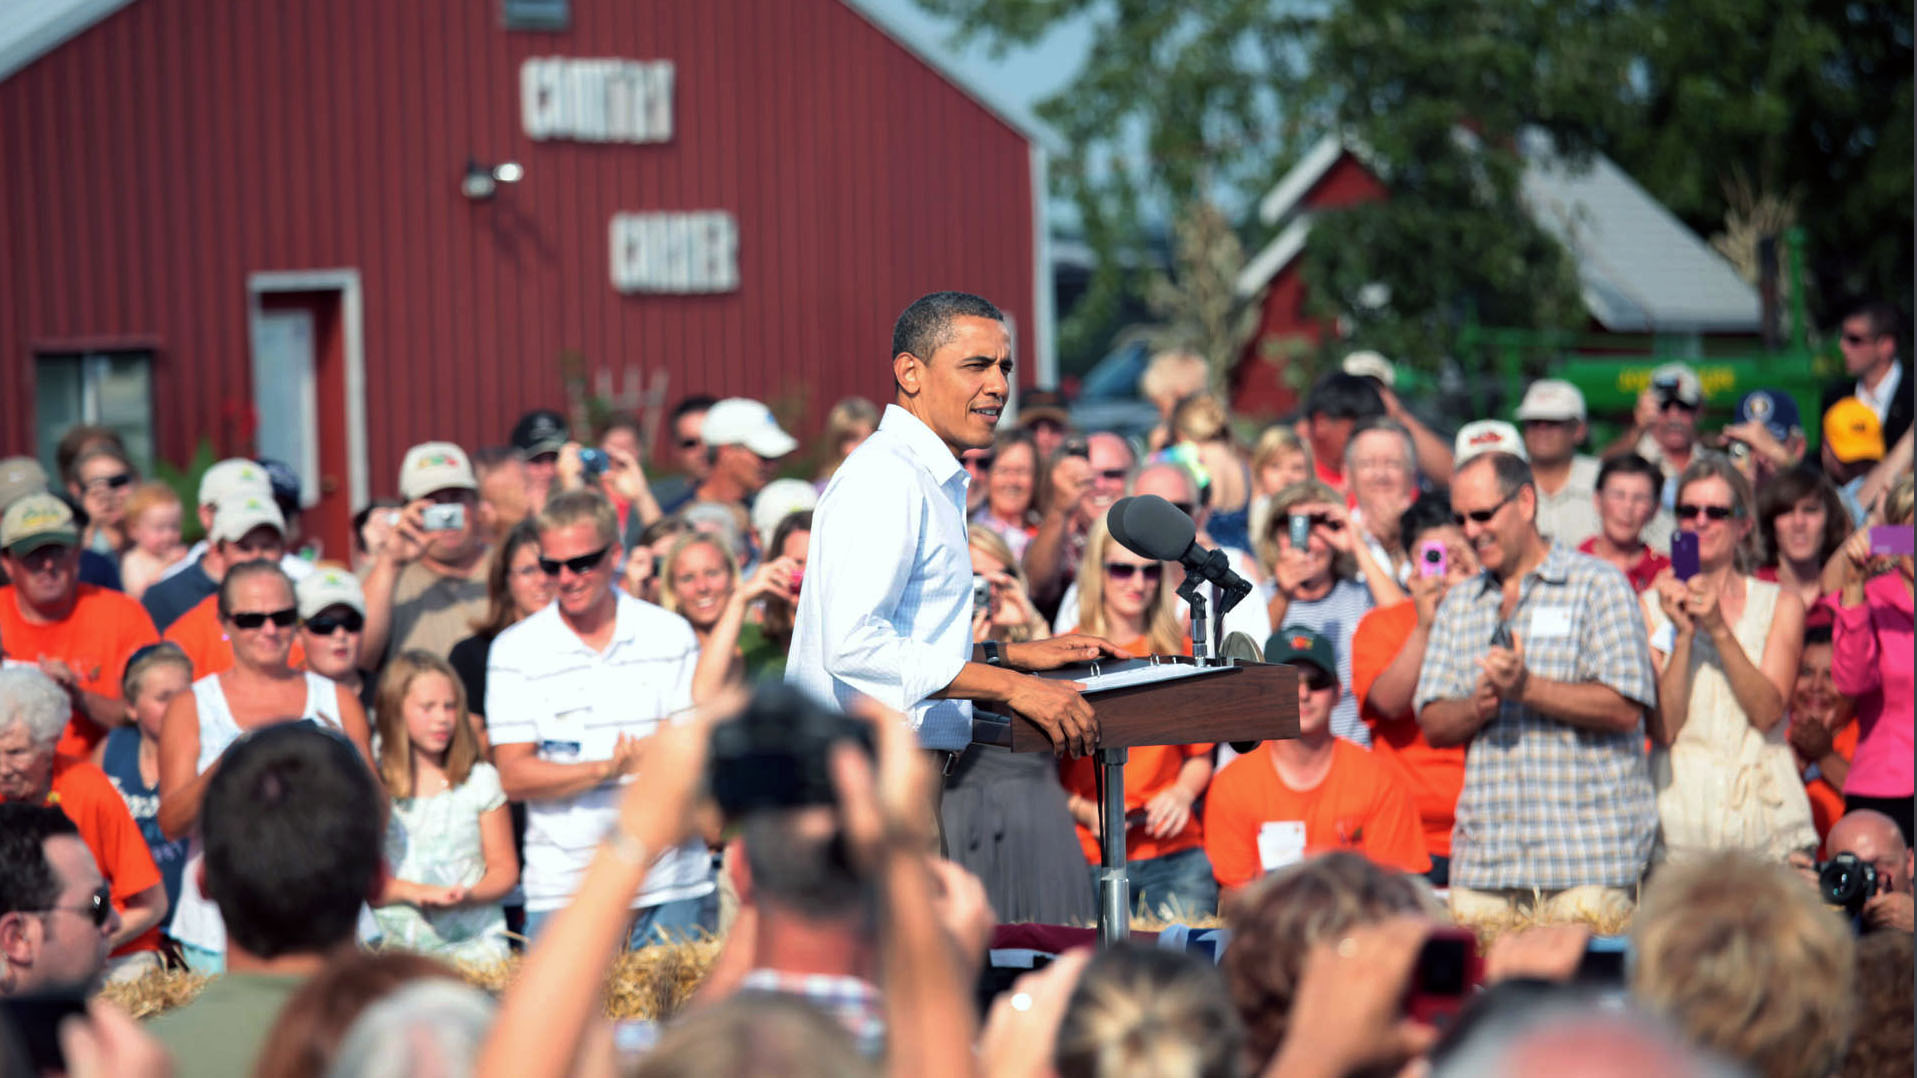 President Obama in Alpha, Illinois